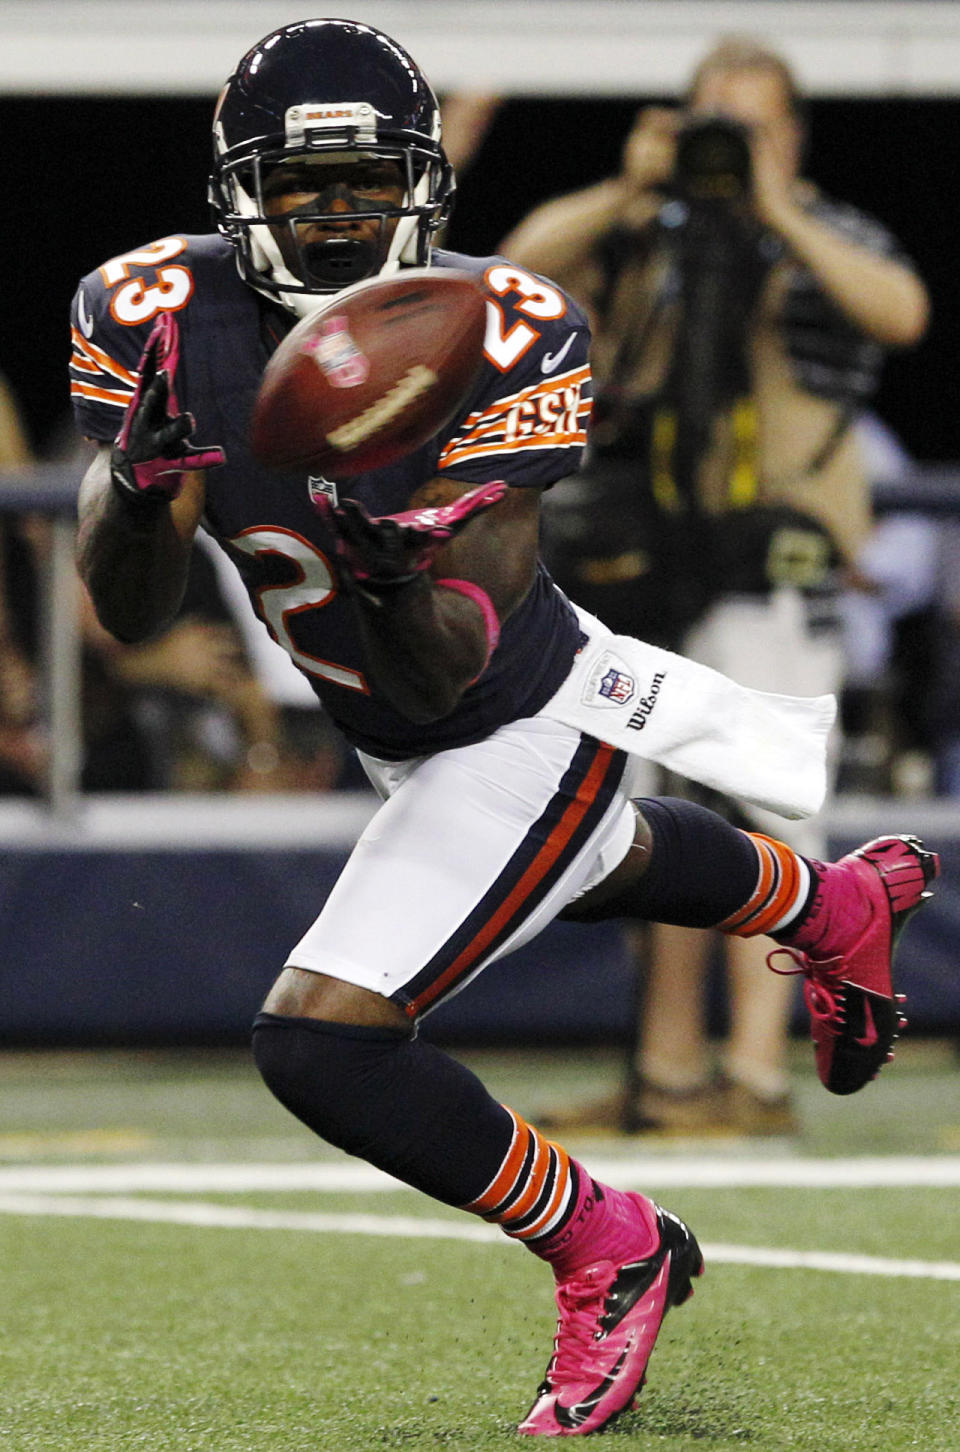 Chicago Bears wide receiver Devin Hester (23) makes a touchdown reception against the Dallas Cowboys during the second half of an NFL football game, Monday, Oct. 1, 2012, in Arlington, Texas. (AP Photo/LM Otero)